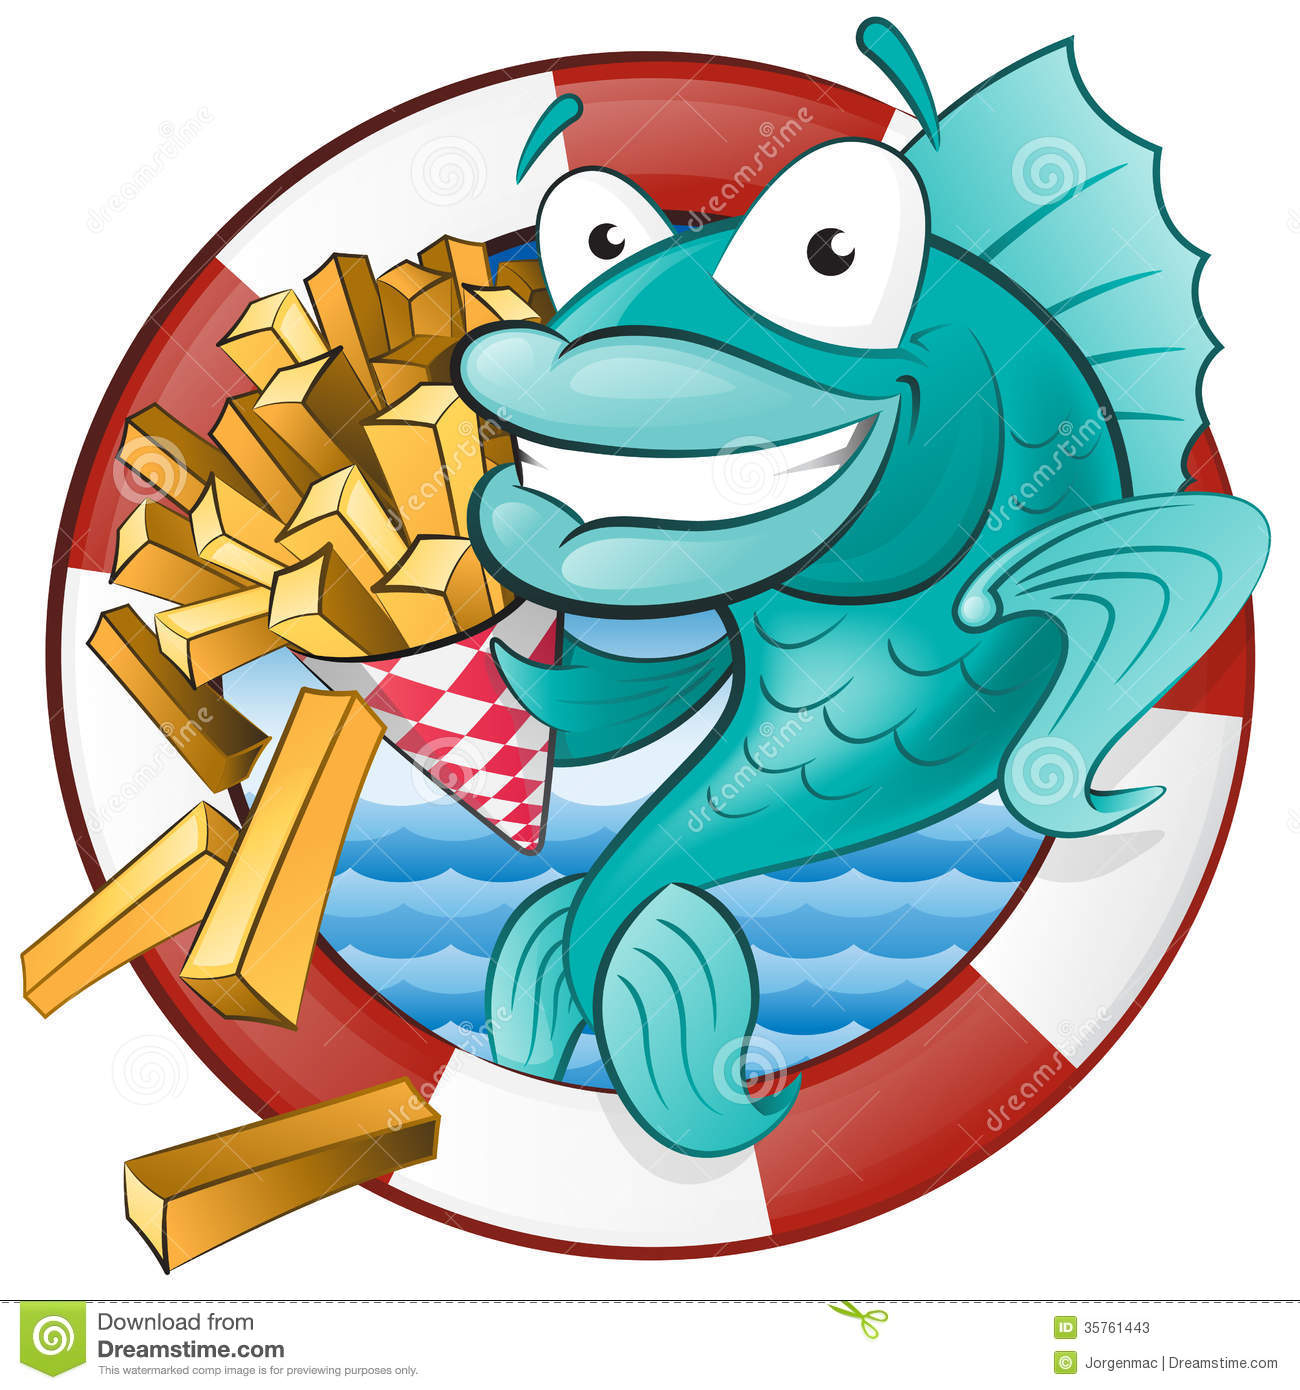 Fish and chips free. Chip clipart cartoon